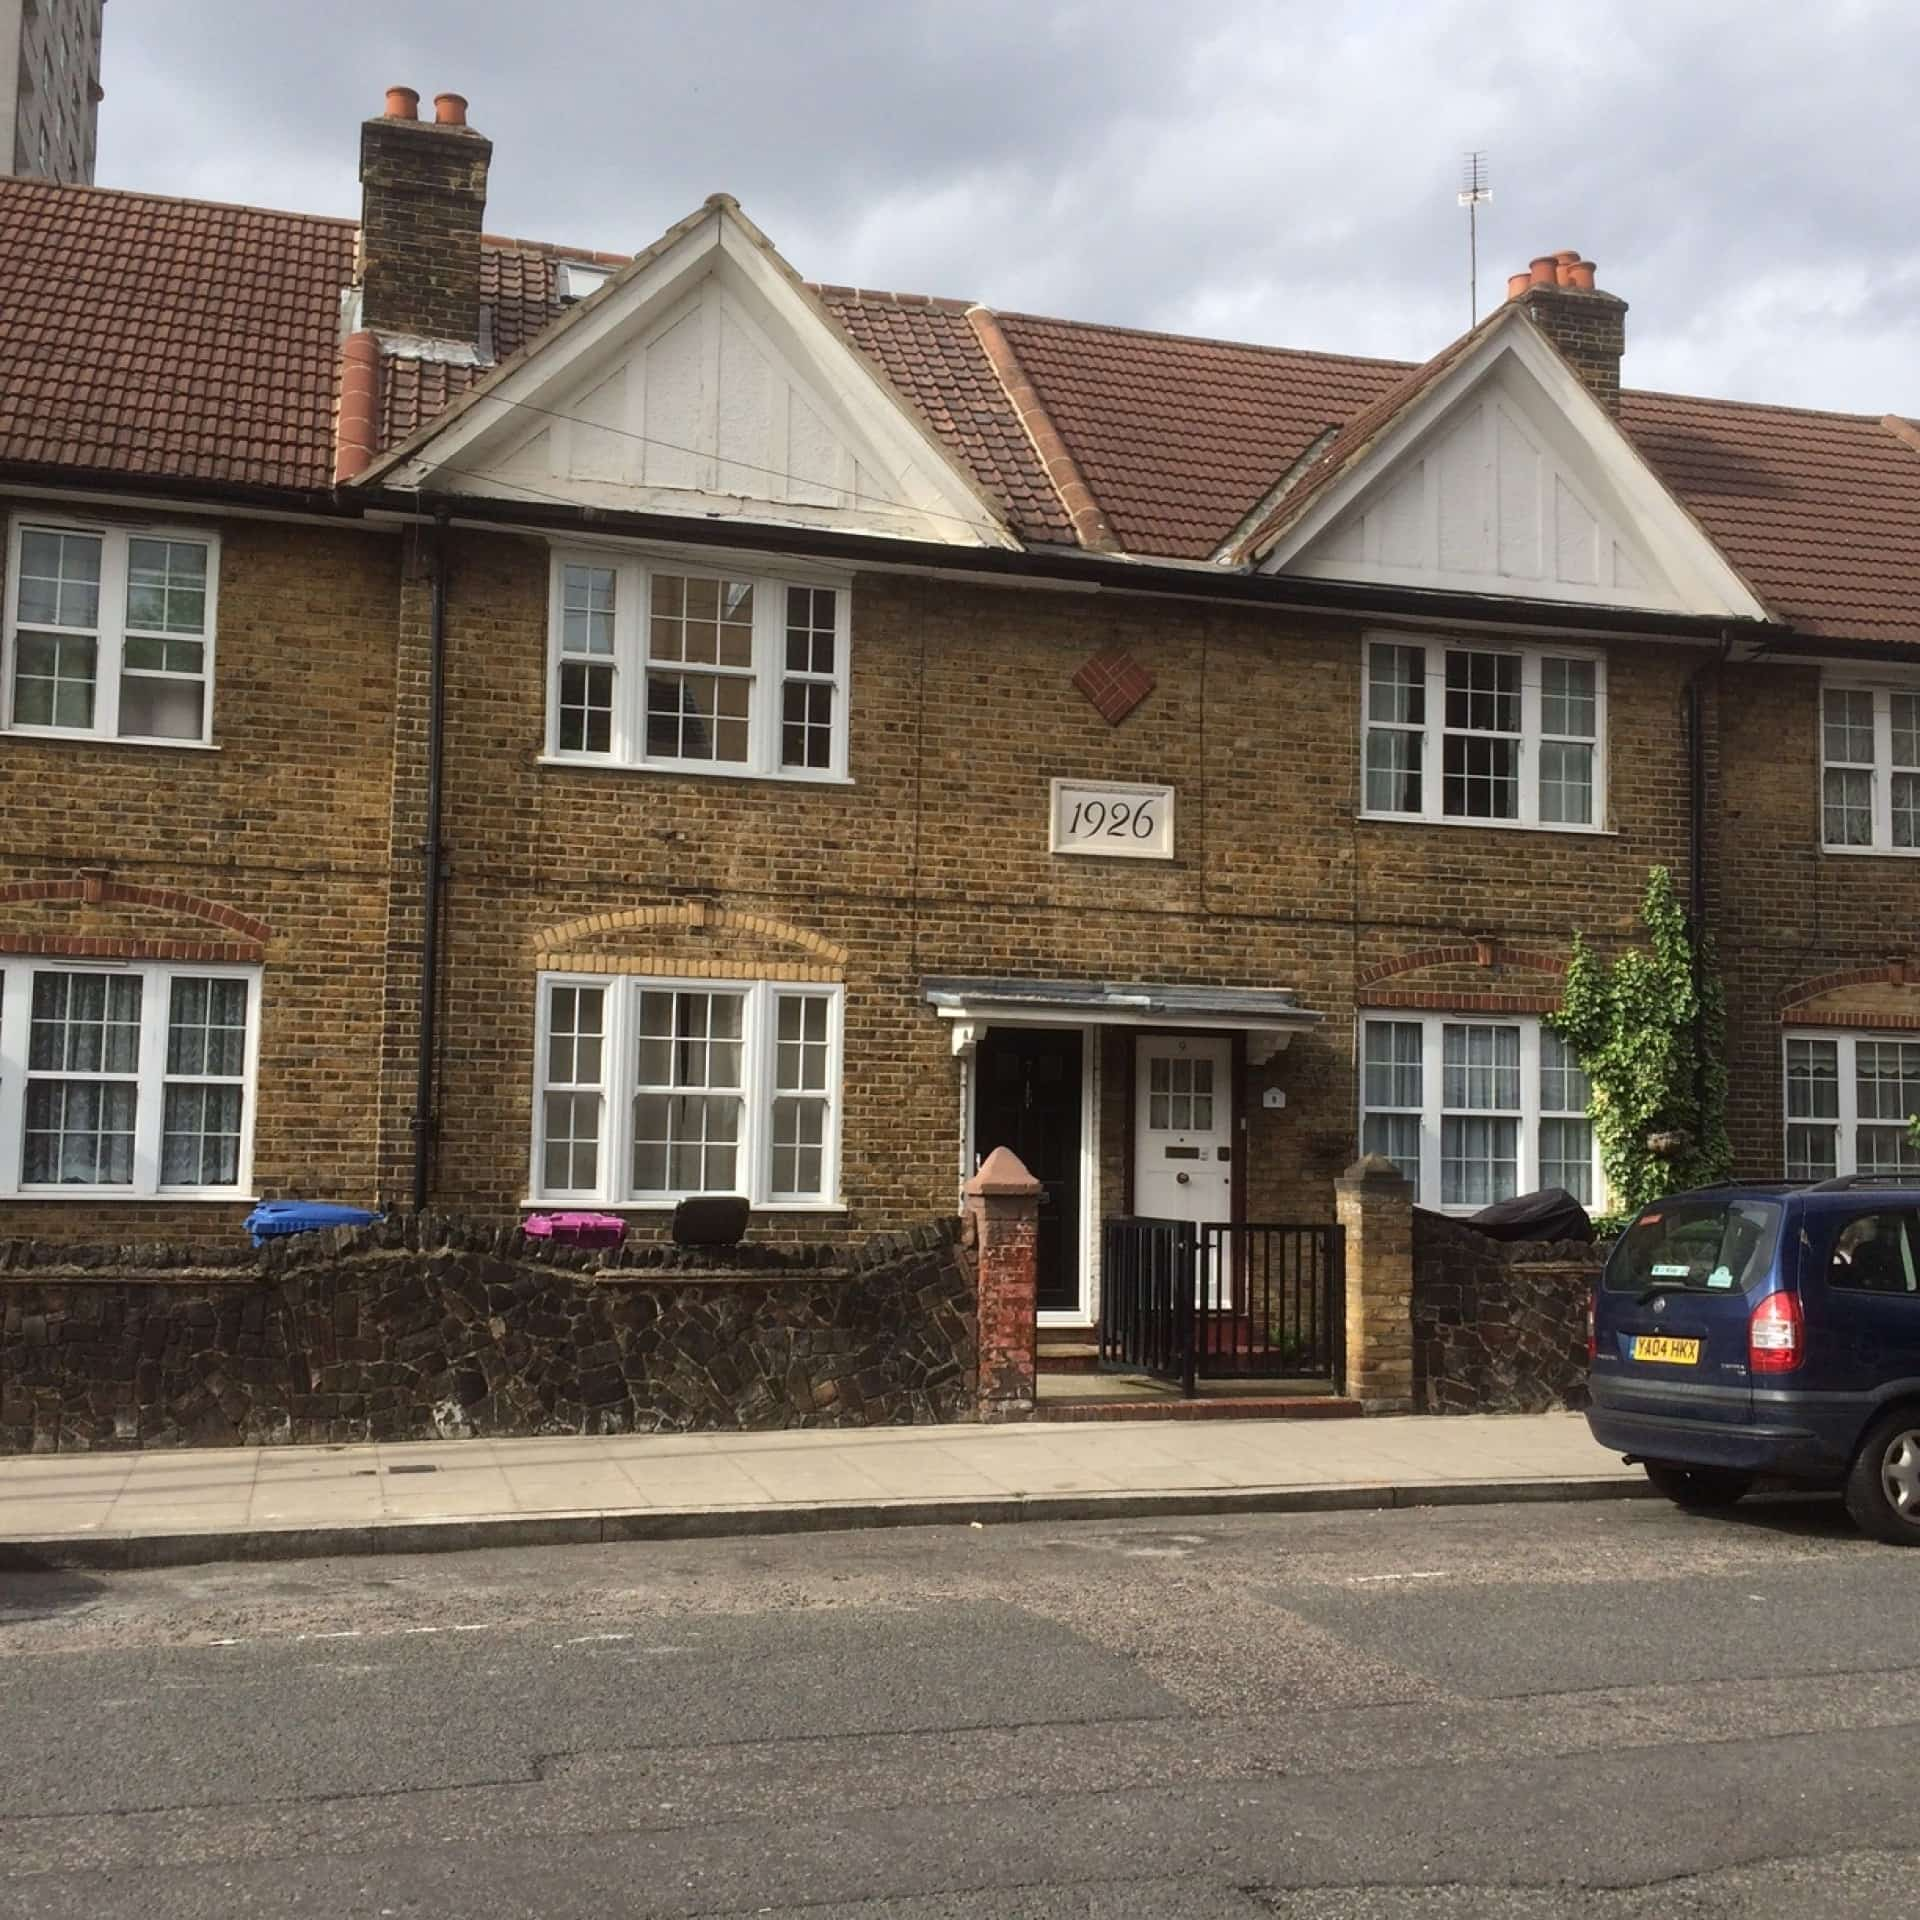 Look At The Estate We're in – philanthopy and social housing